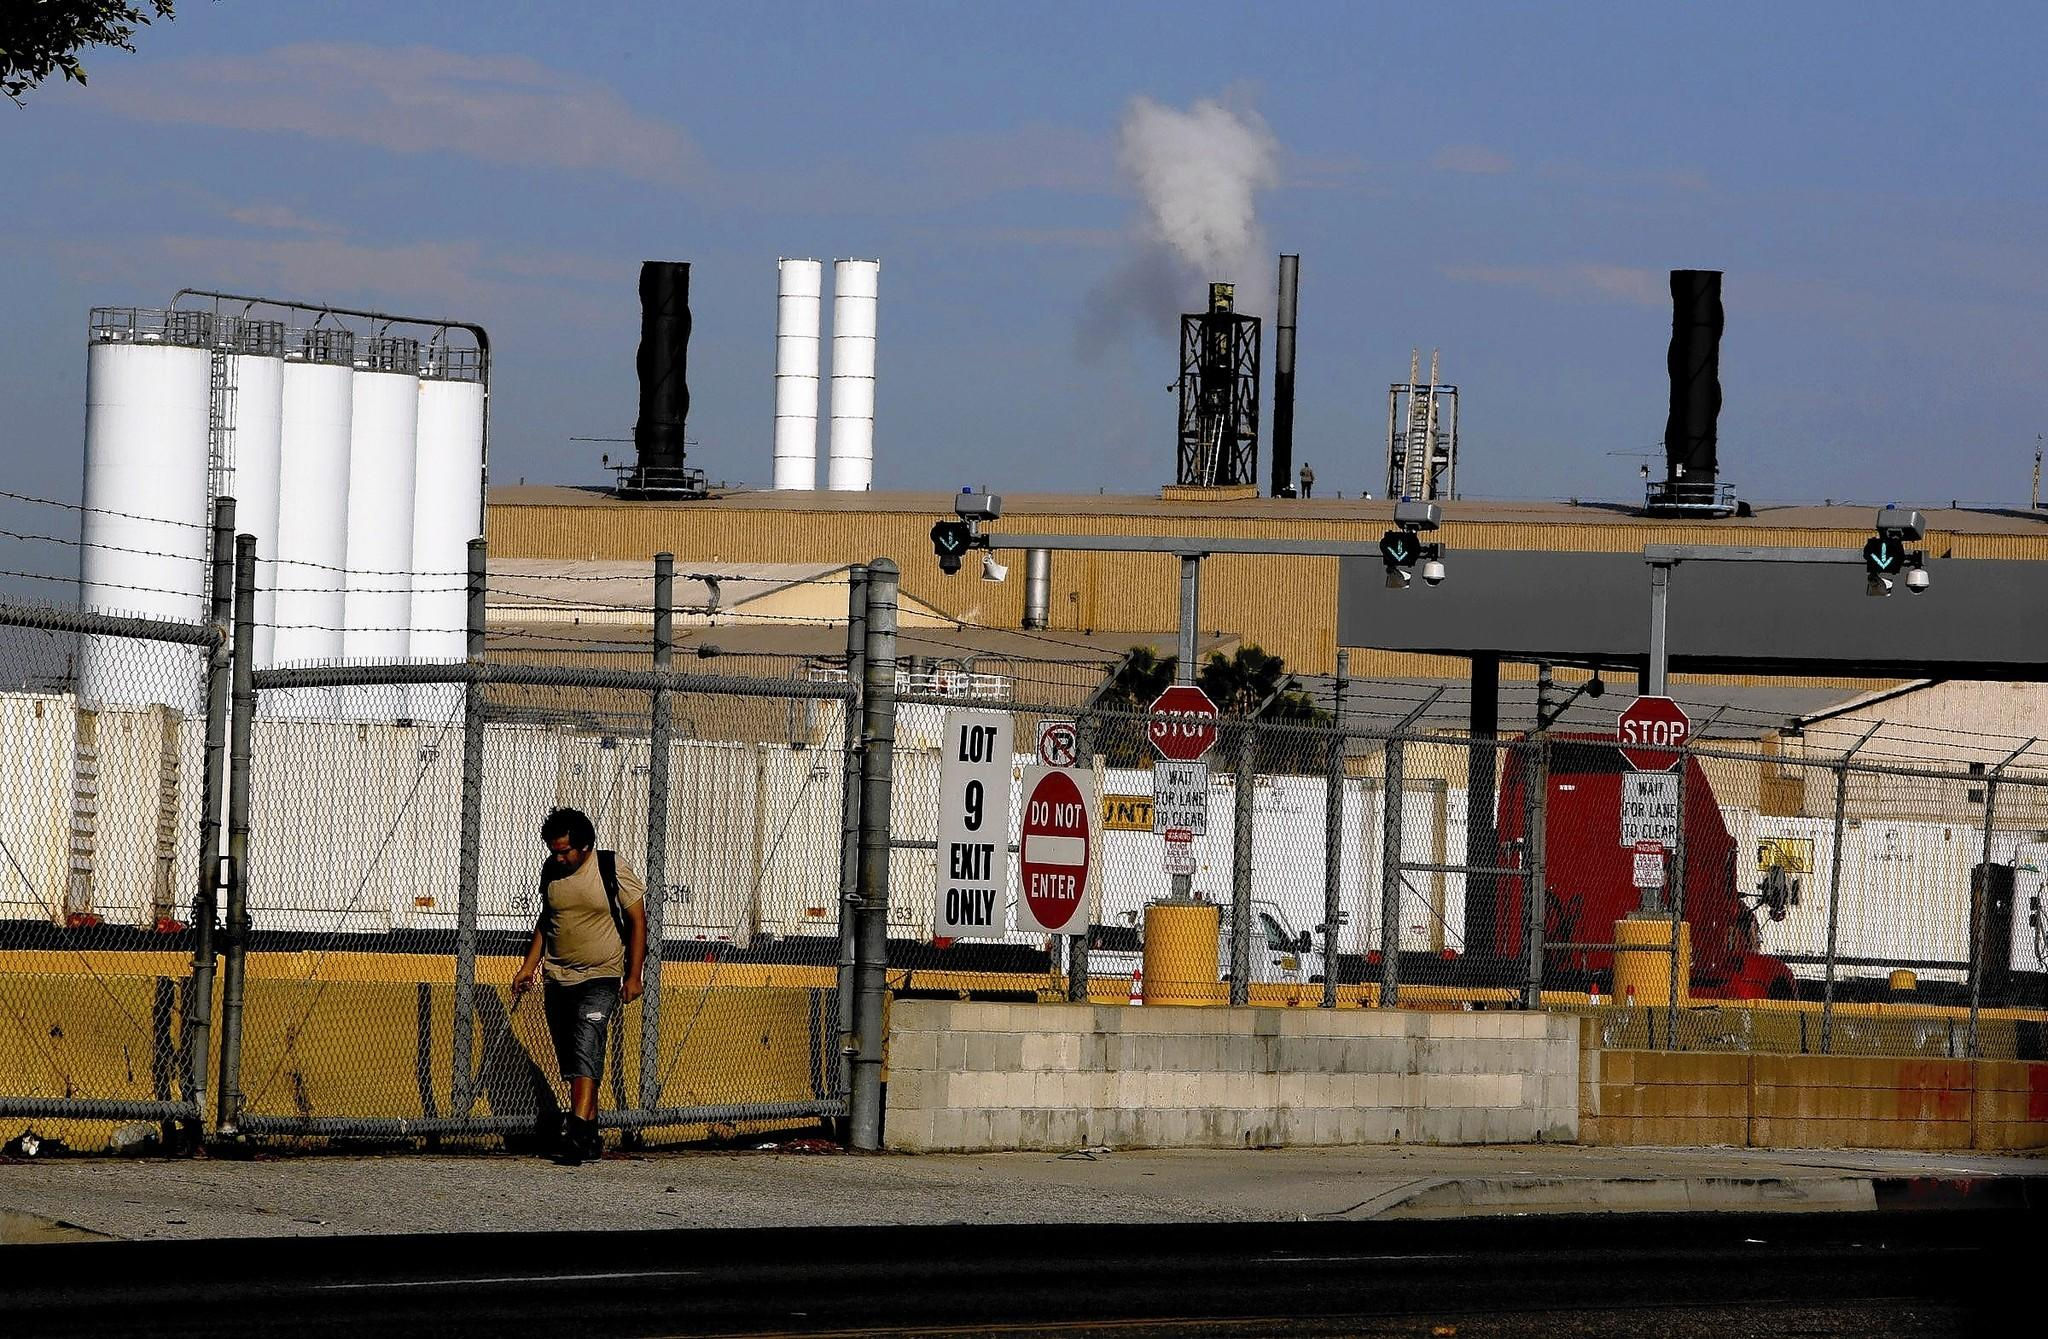 One year after the South Coast Air Quality Management District found that arsenic emissions from the Exide plant posed a cancer risk to more than 100,000 people, the agency has approved the company's plan to reduce health risks.